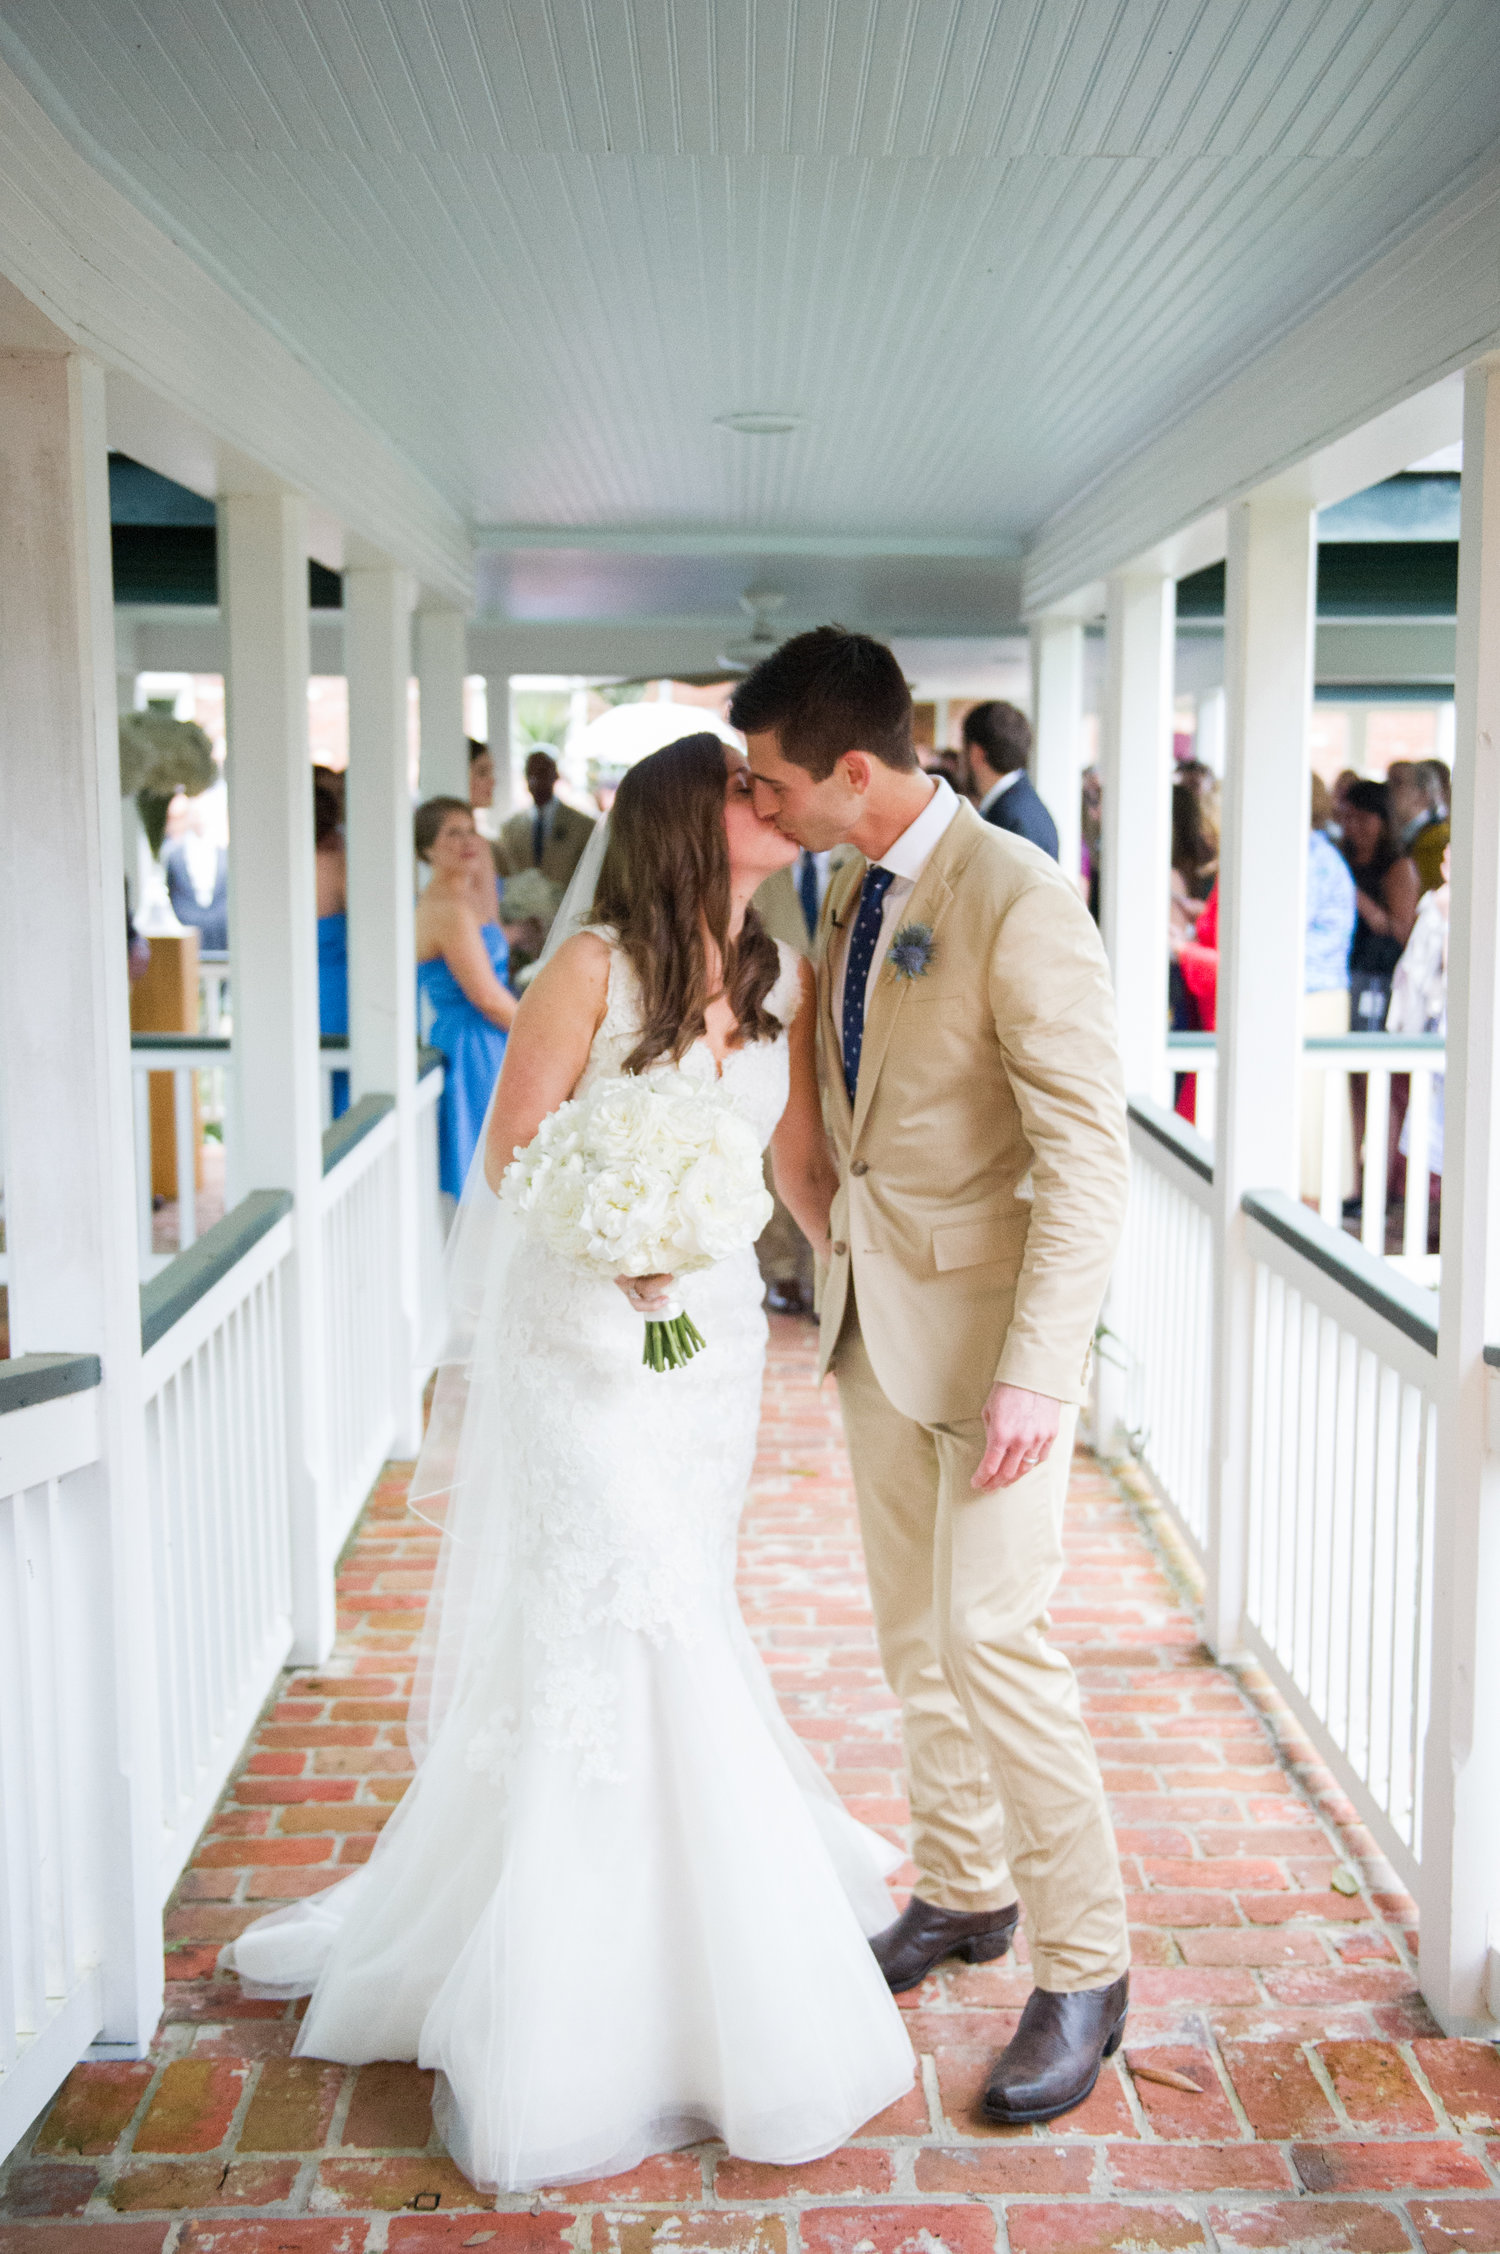 Bride and Groom kiss under a white walkway in front of their guests